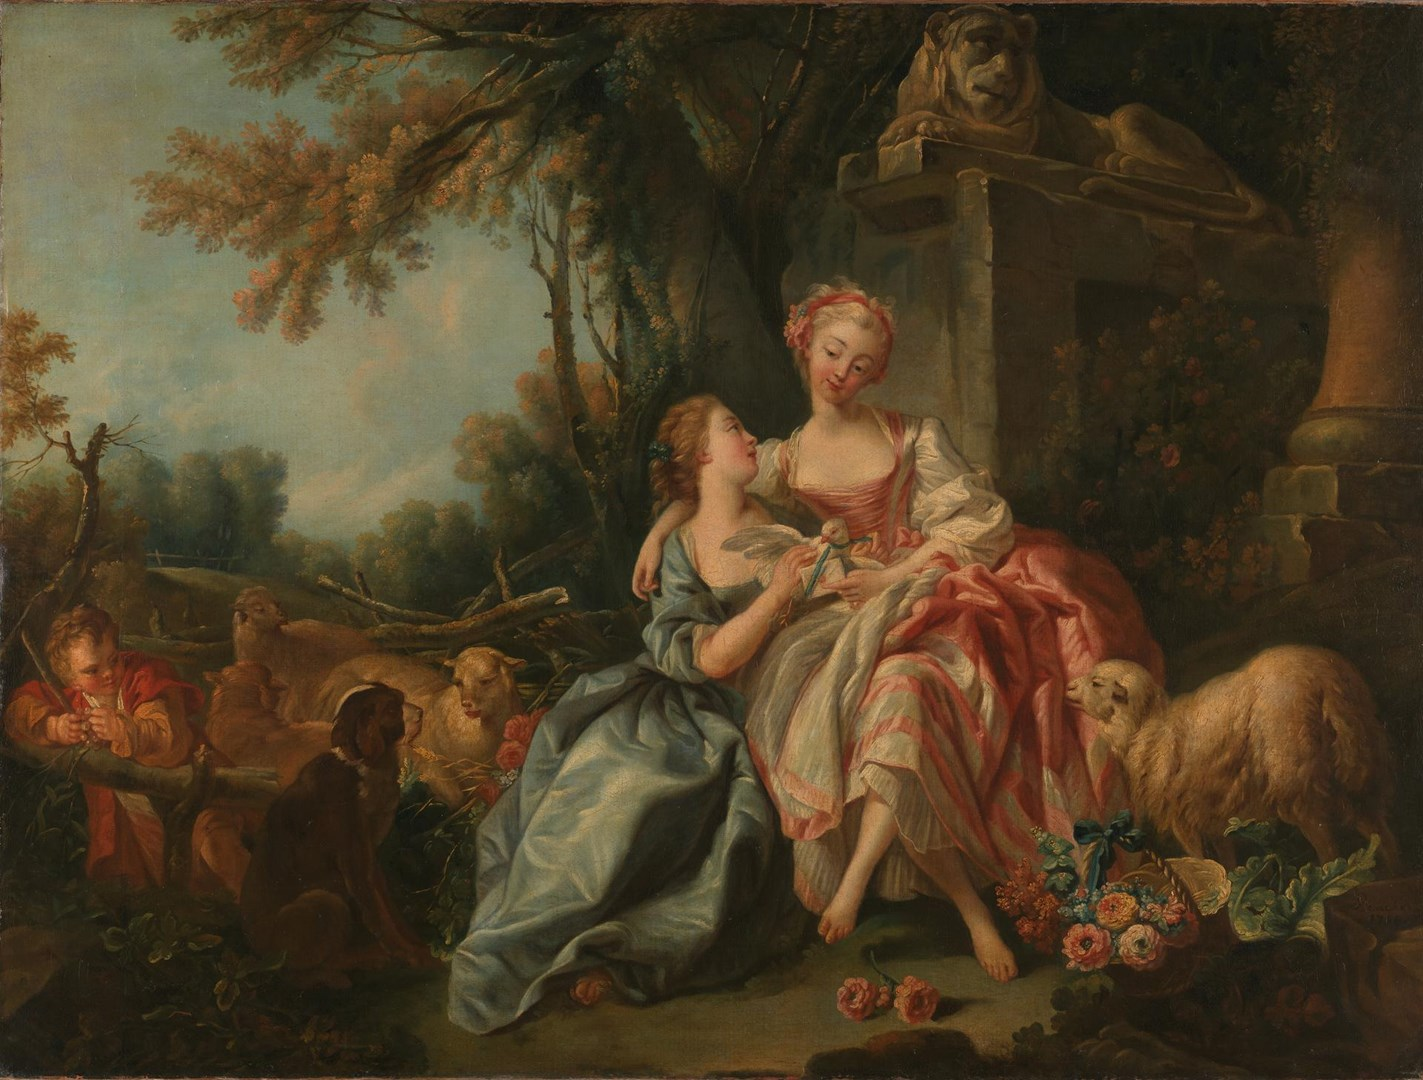 The Billet-Doux by Studio of François Boucher